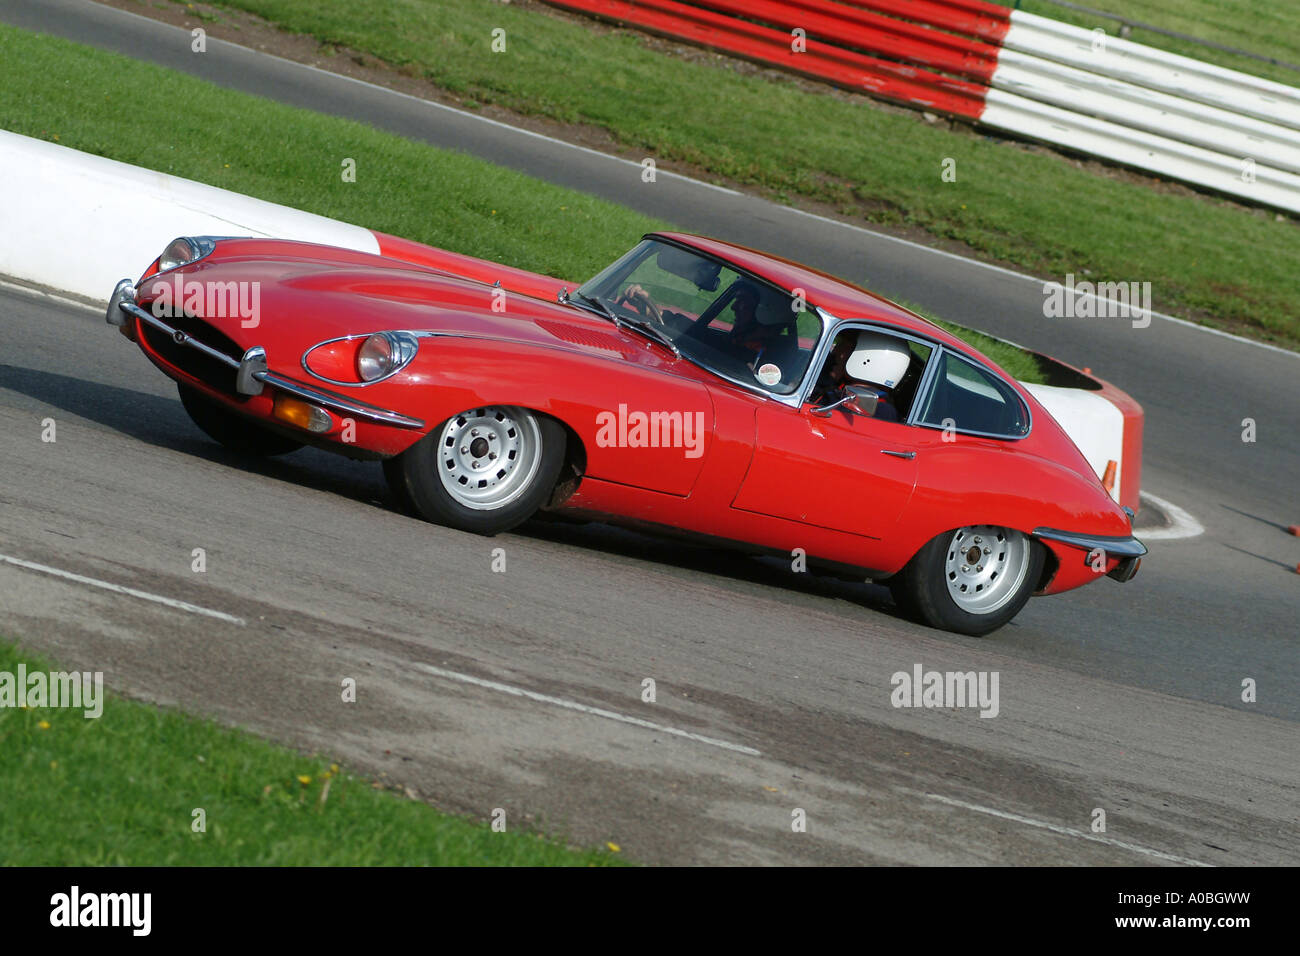 Jaguar driving gloves uk - Red Jaguar E Type Classic Sports Car On Race Track In The Uk Stock Image